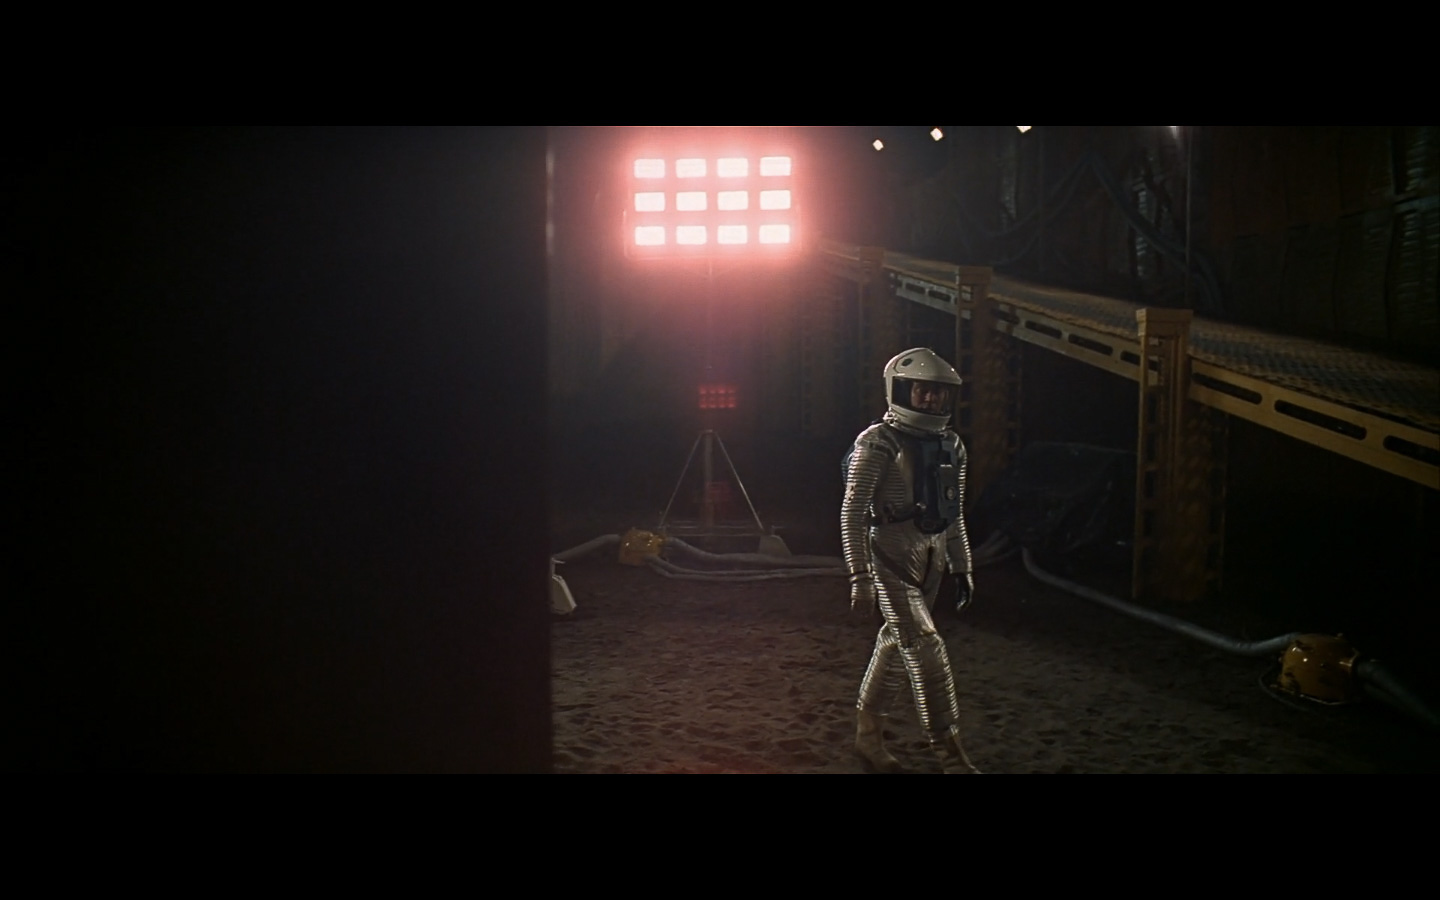 scene on the moon obelisk - space odyssey-10